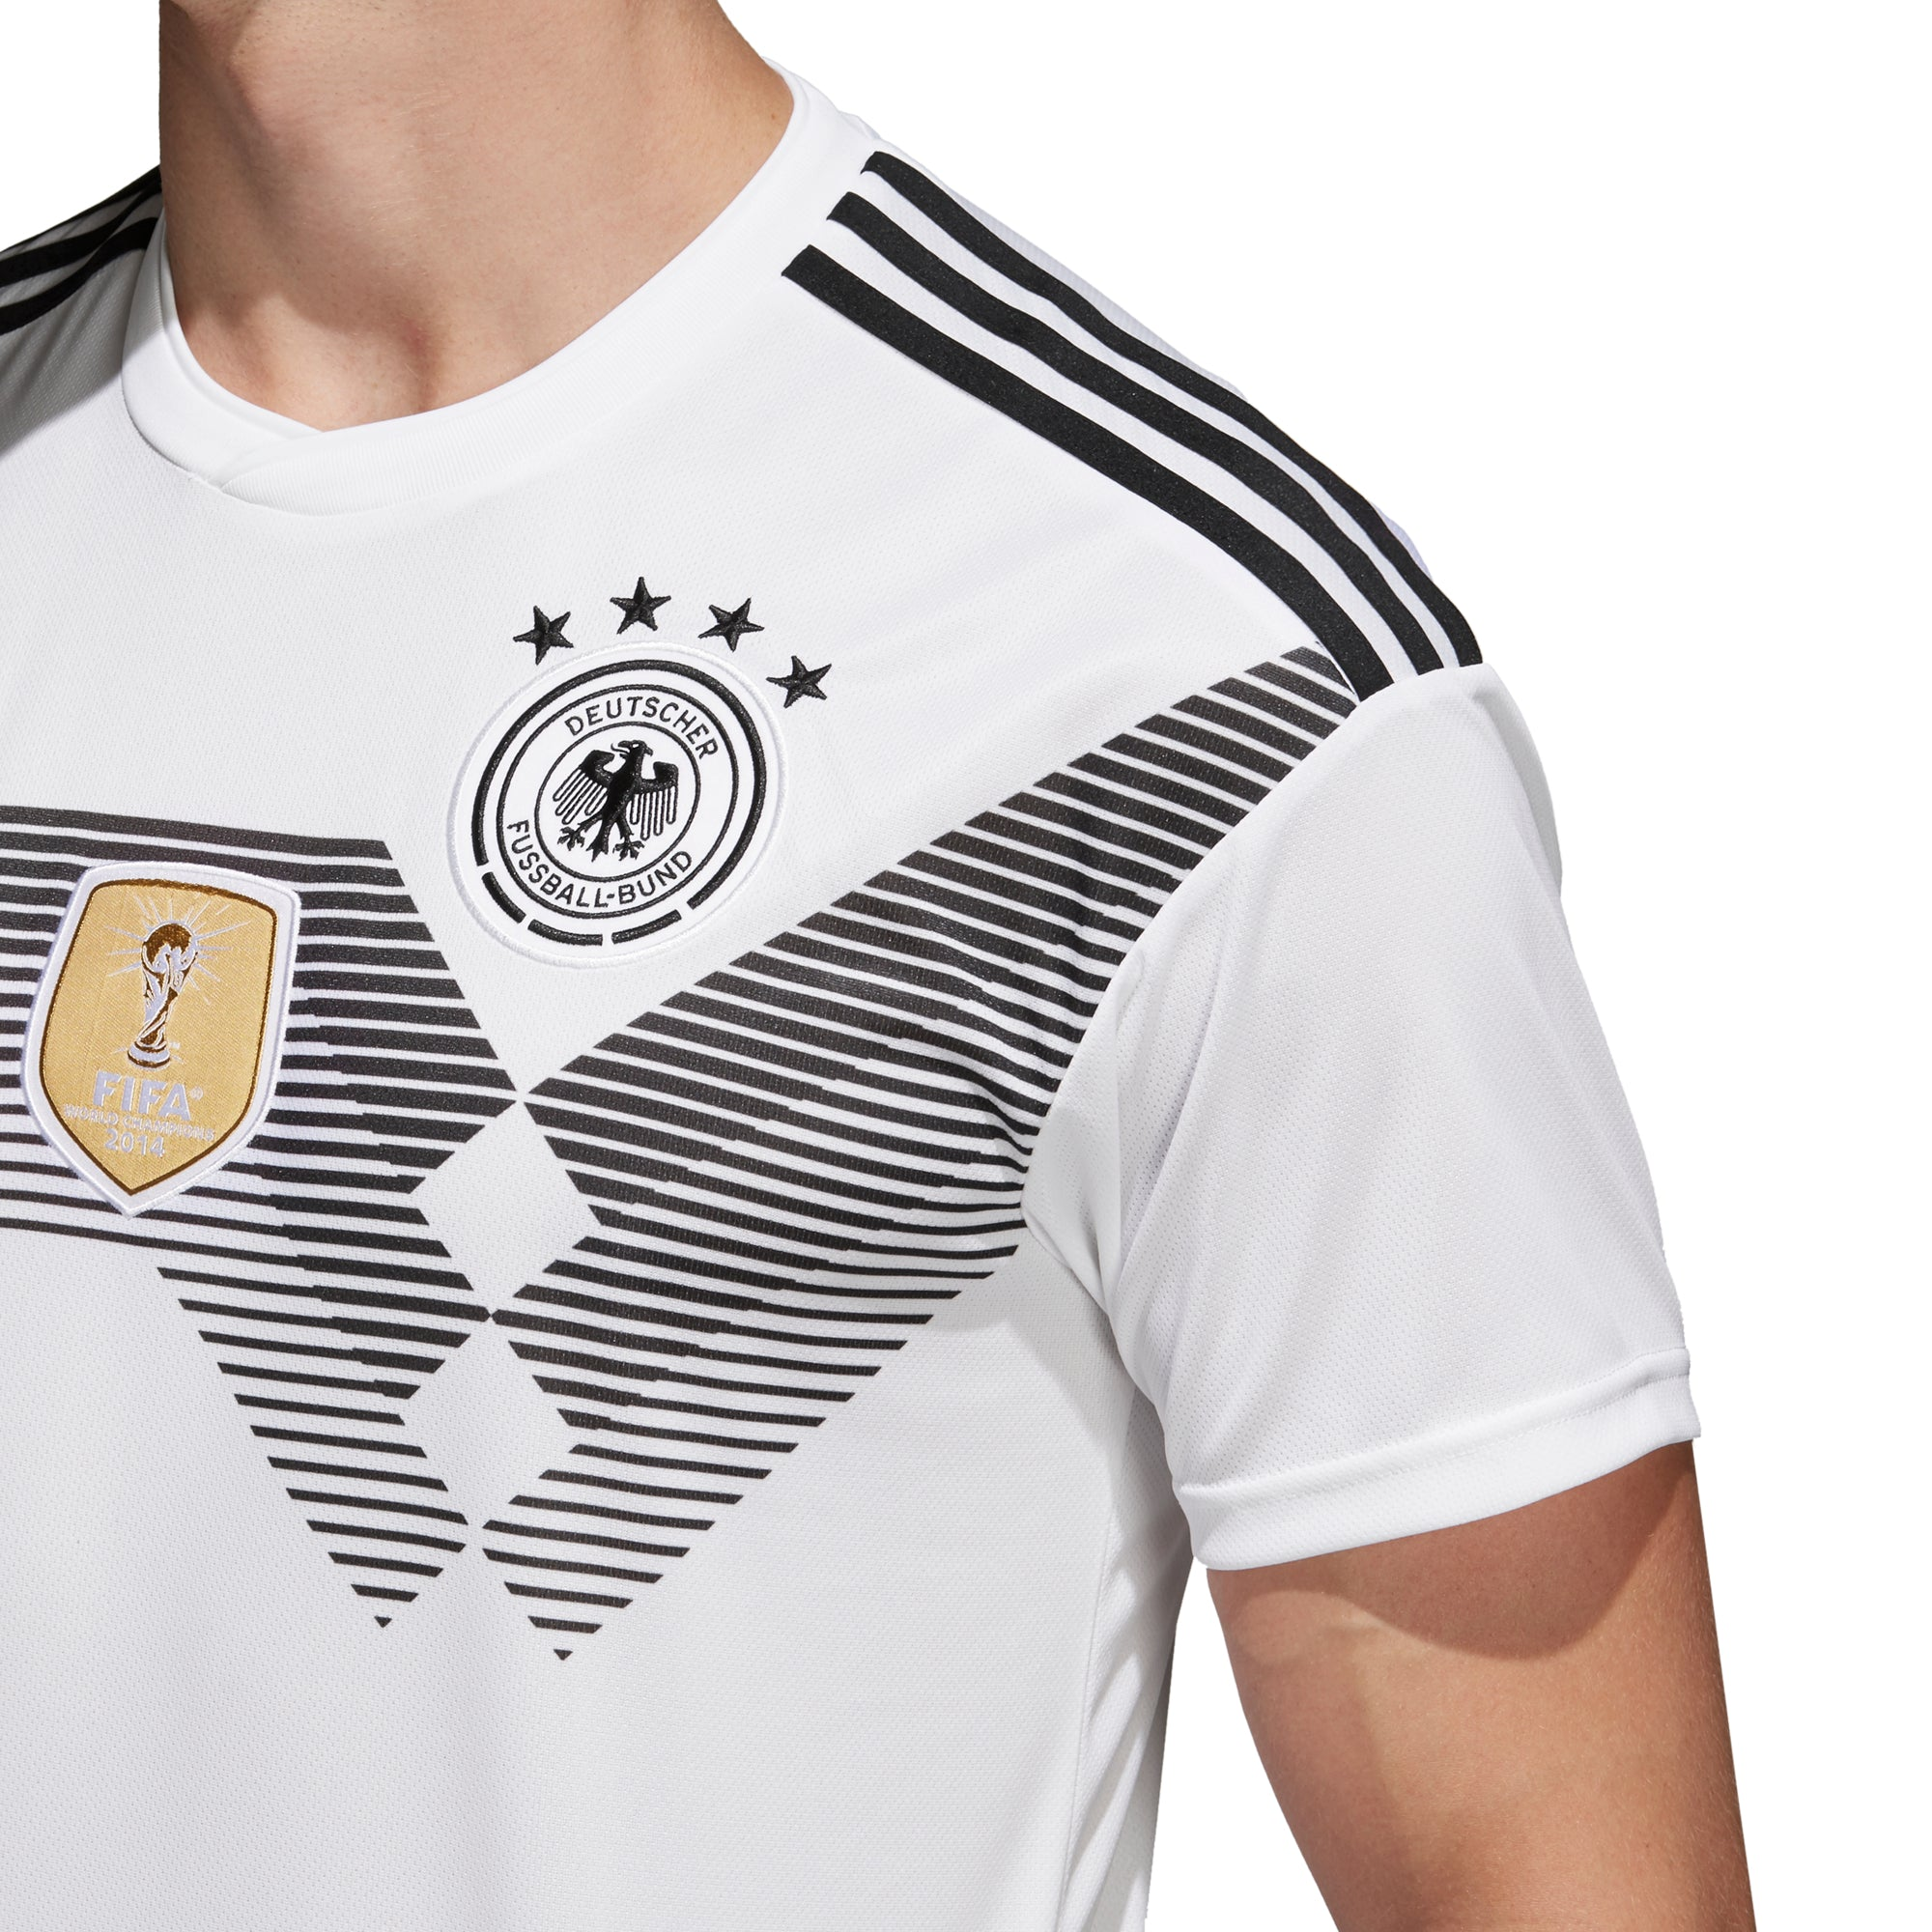 Adidas World Cup 2018 Home Jersey Argentina Germany Spain Fashion Big Size T Shirt 3xl